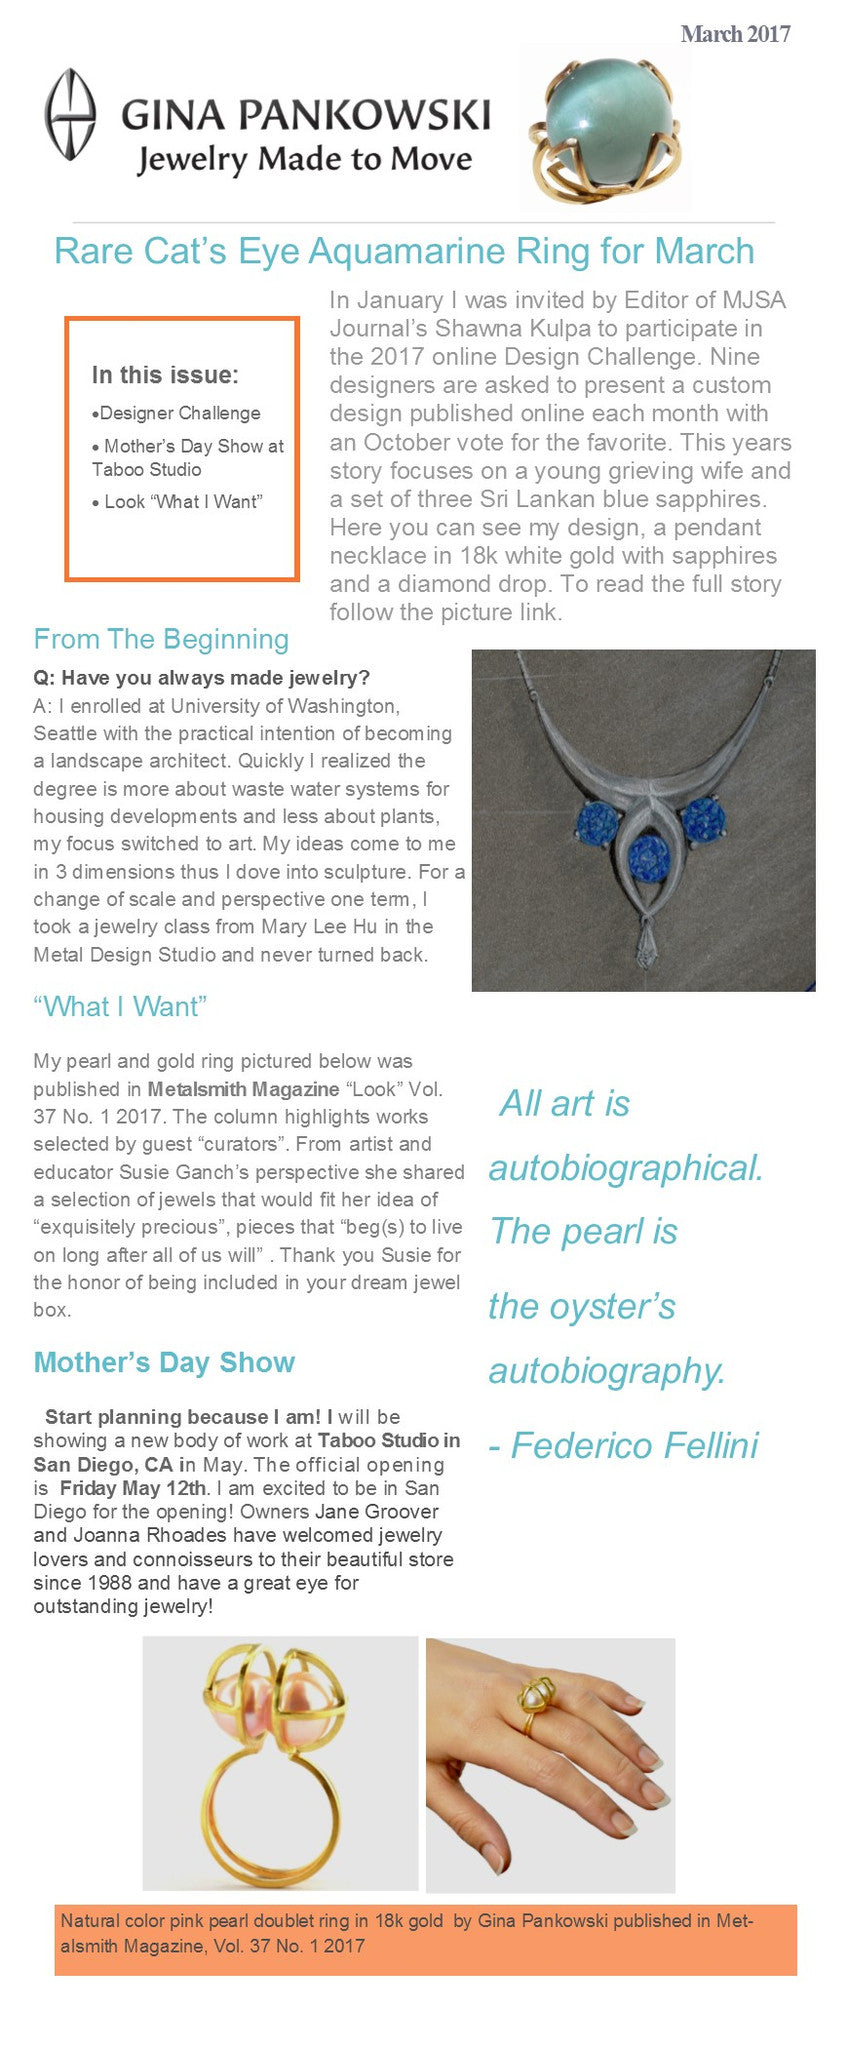 Gina Pankowski Jewelry March News